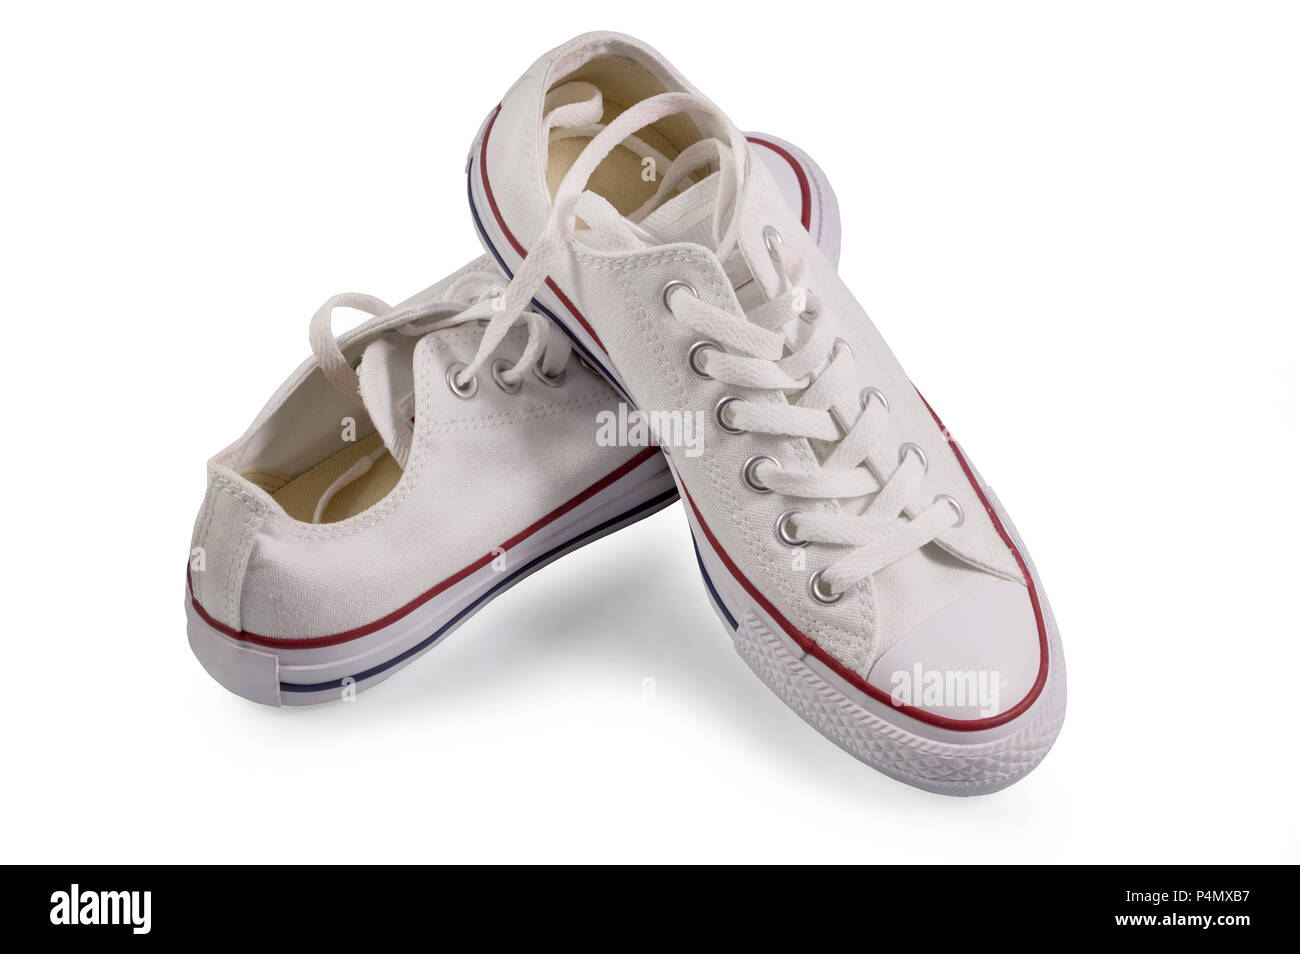 7796470e93c8 Sneakers Shoes Stock Photos   Sneakers Shoes Stock Images - Alamy